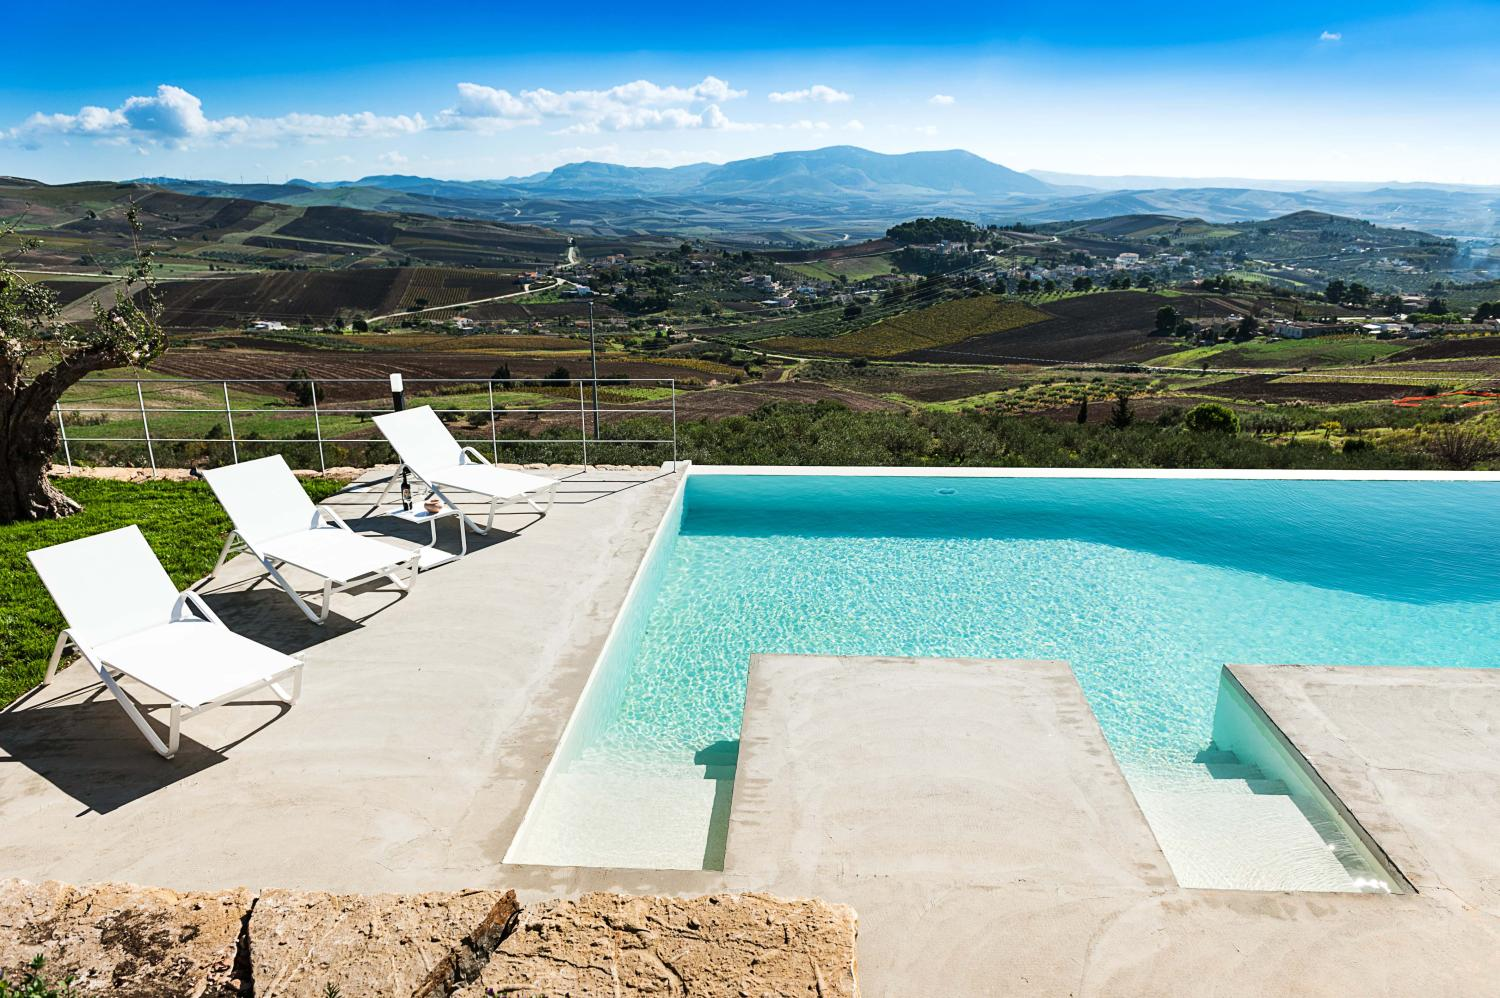 Outdoor pool and sun loungers, Amaryllis, Sicily, Trapani.